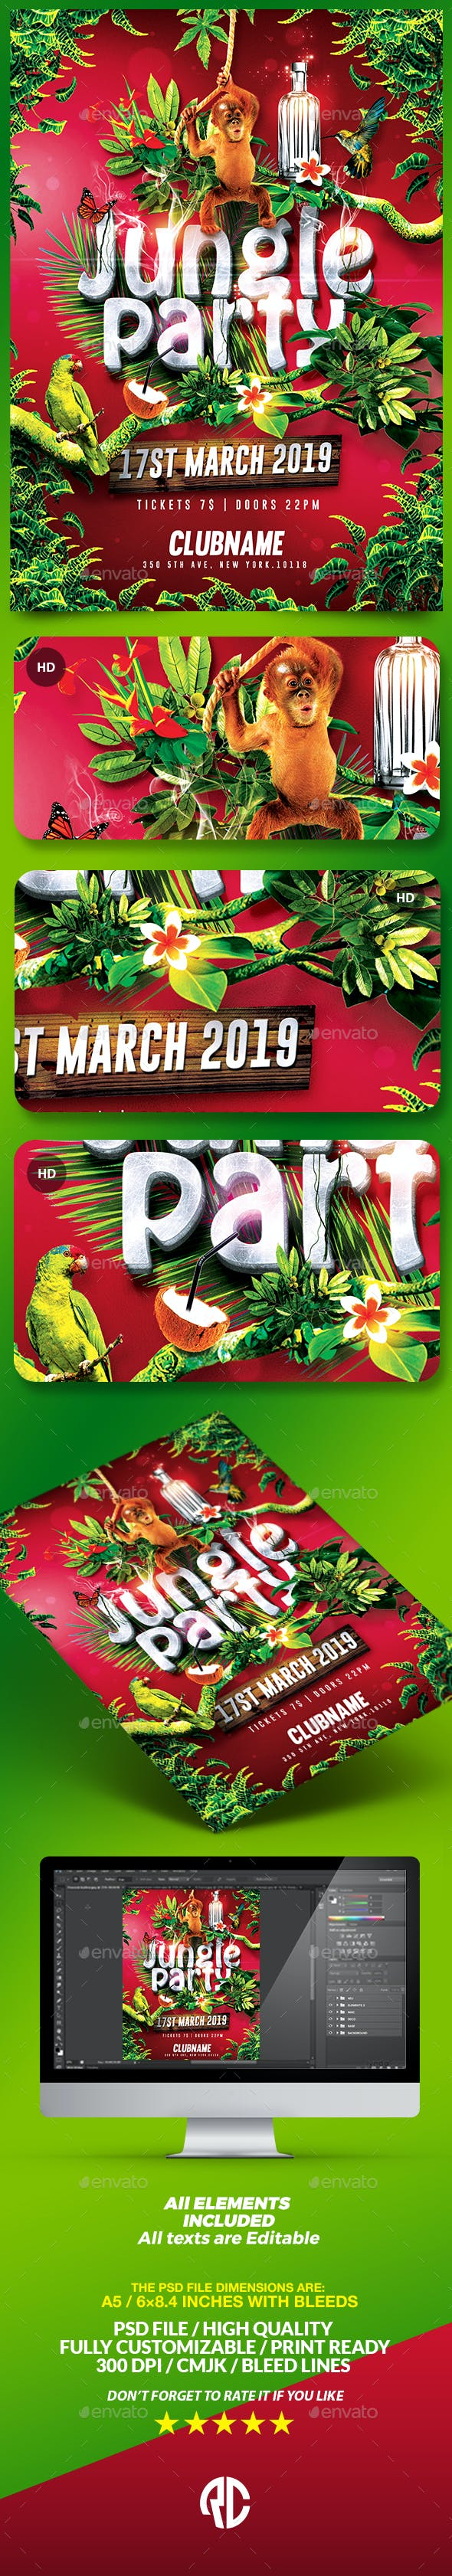 jungle party tropical flyer template by romecreation graphicriver